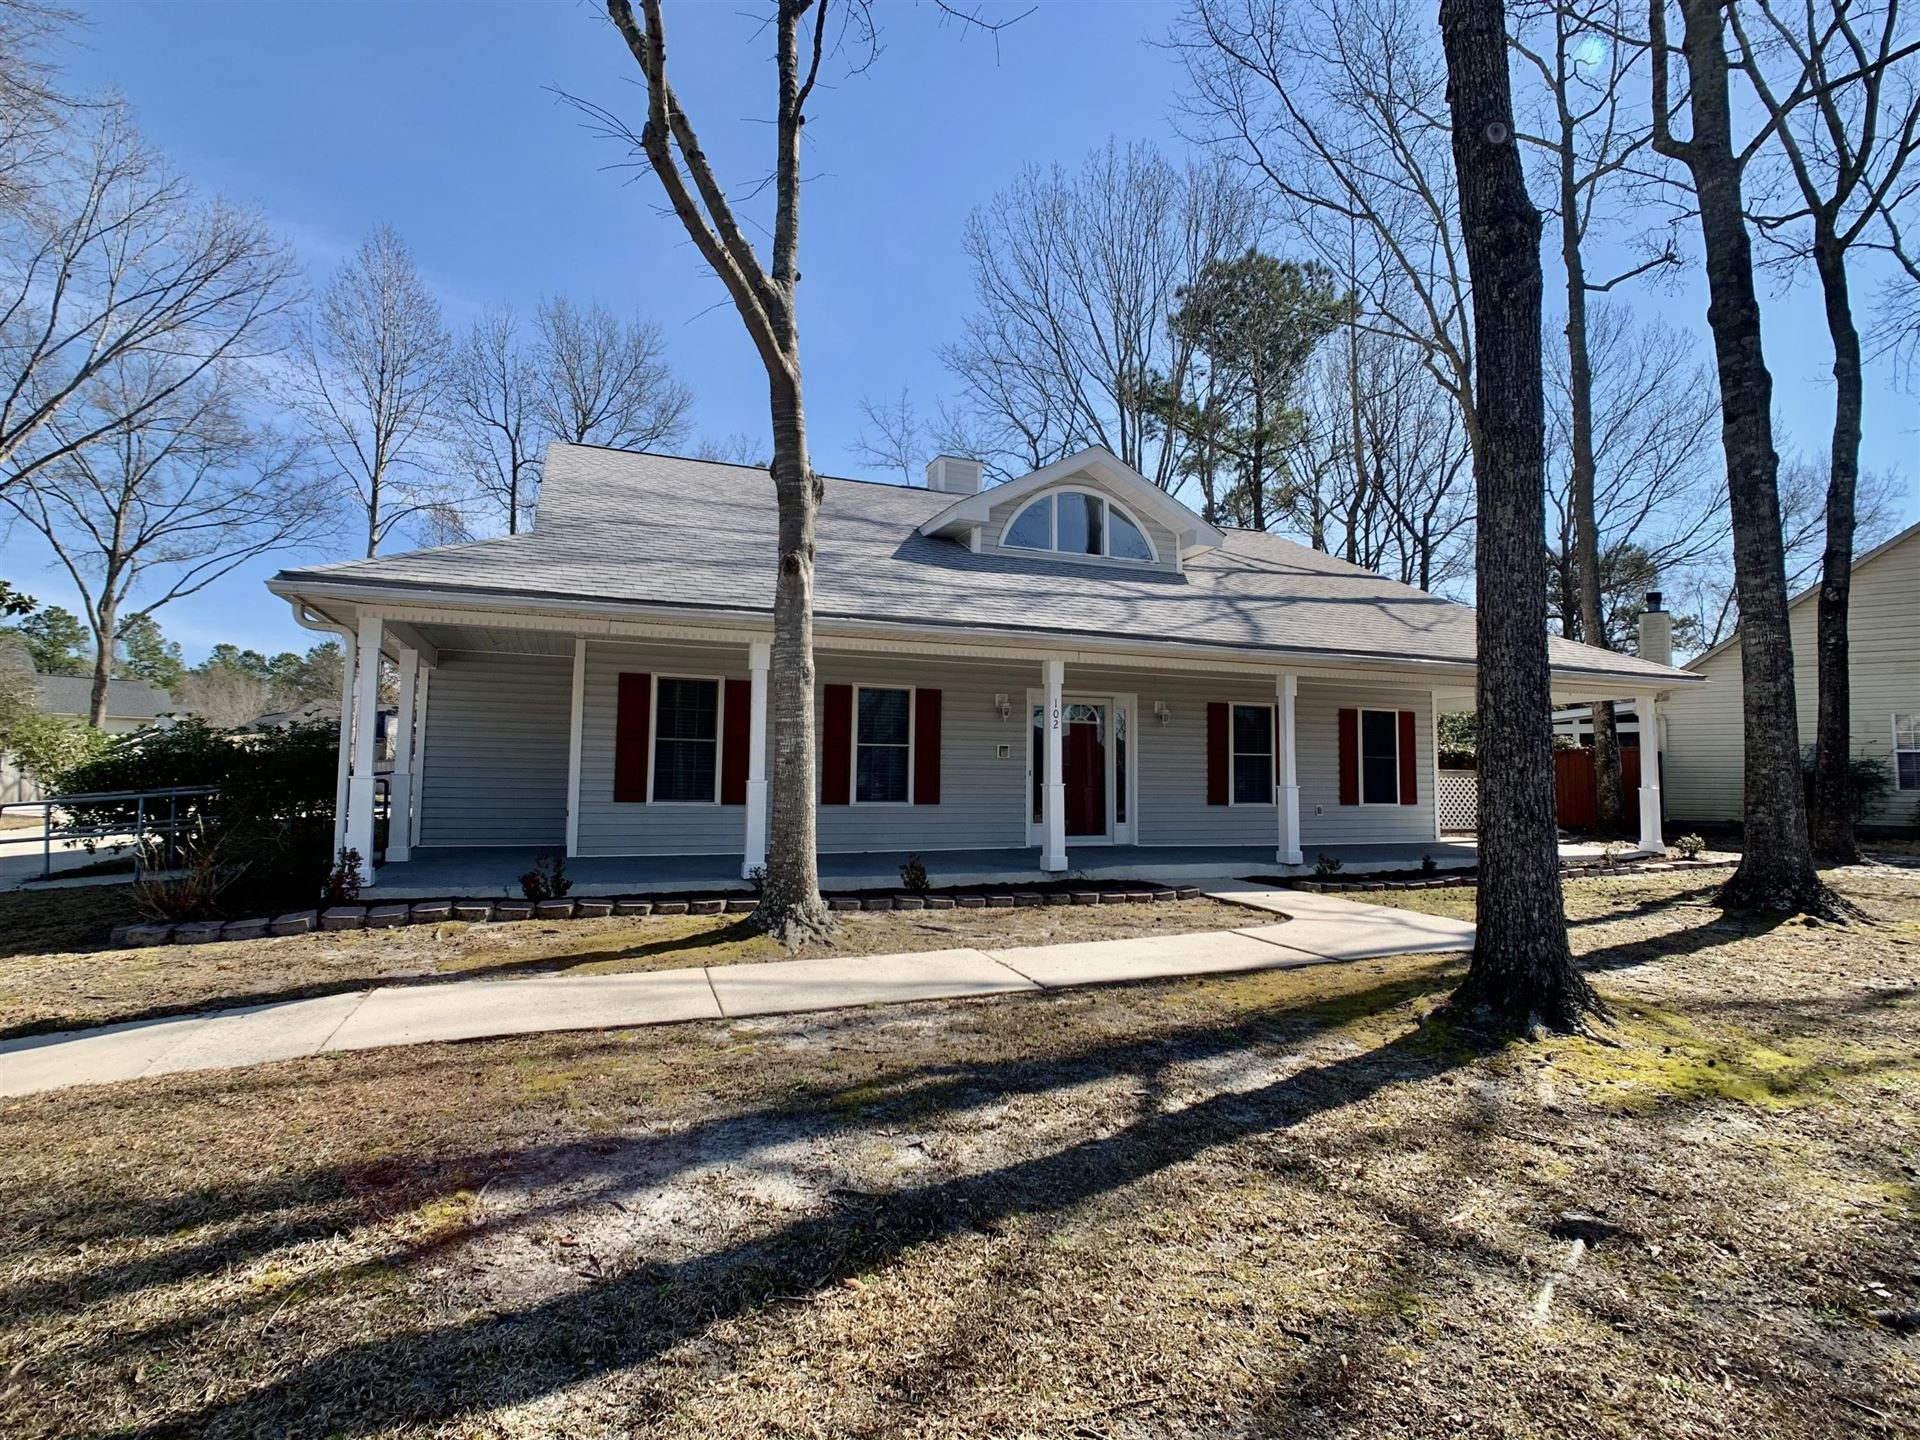 Photo of 102 N Ansel Crossing, Goose Creek, SC 29445 (MLS # 21005180)